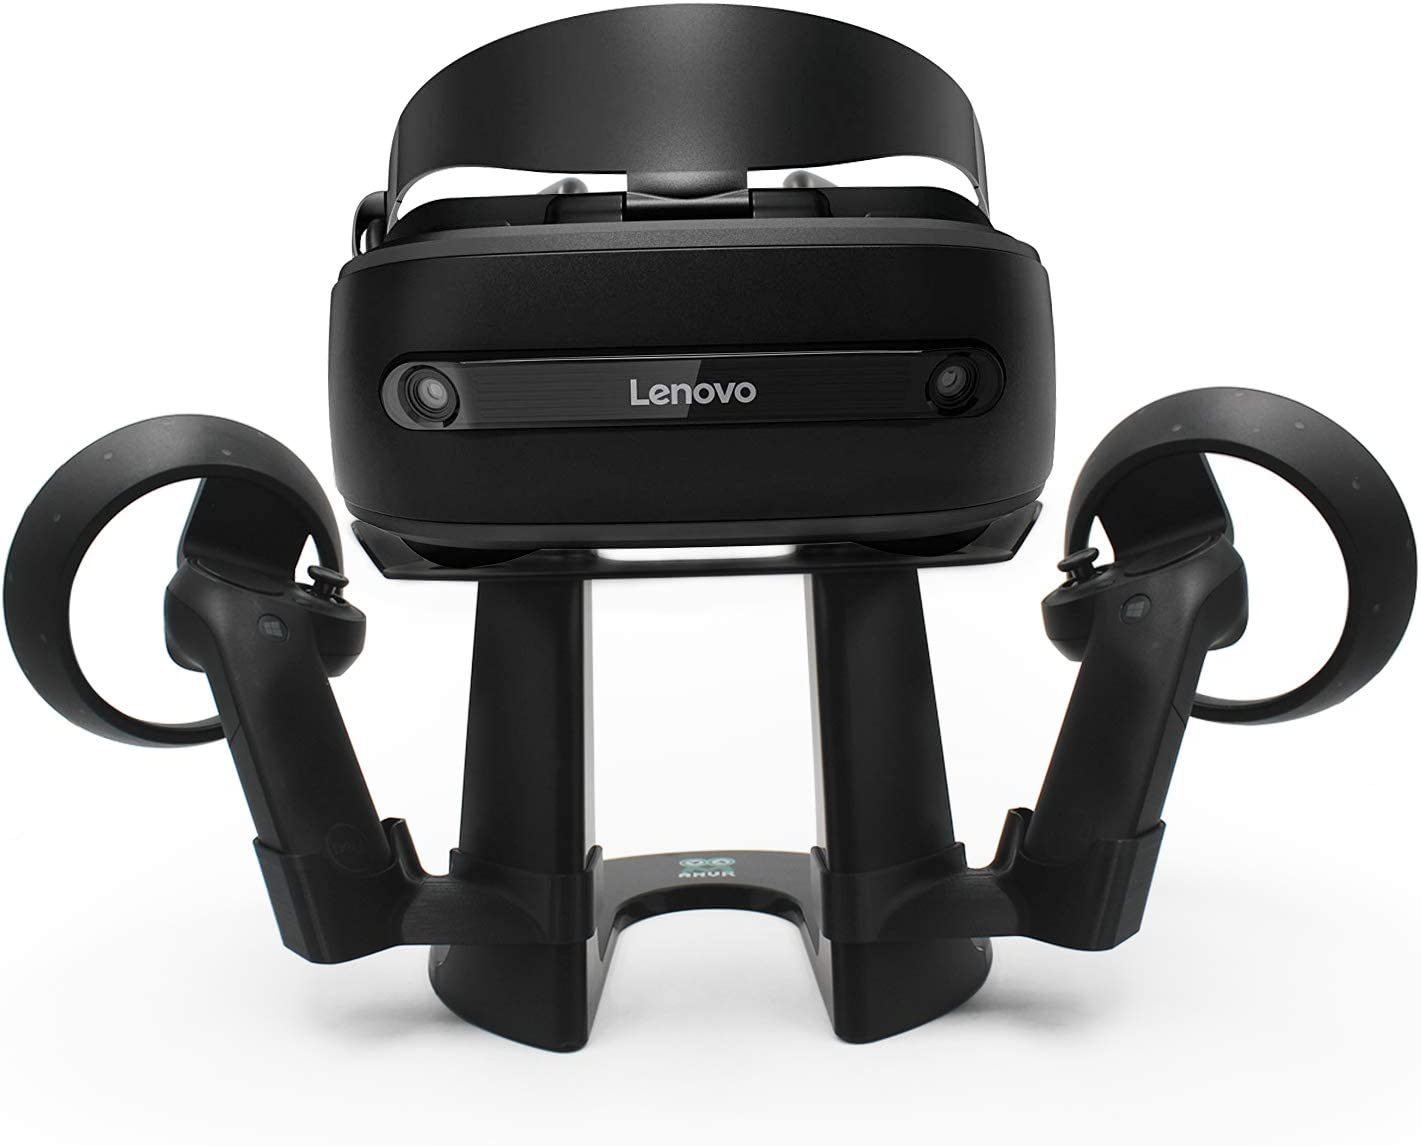 AMVR VR Stand,Headset Display Holder and Station for Acer/Hp/Dell/Lenovo Windows Mixed Reality Headset